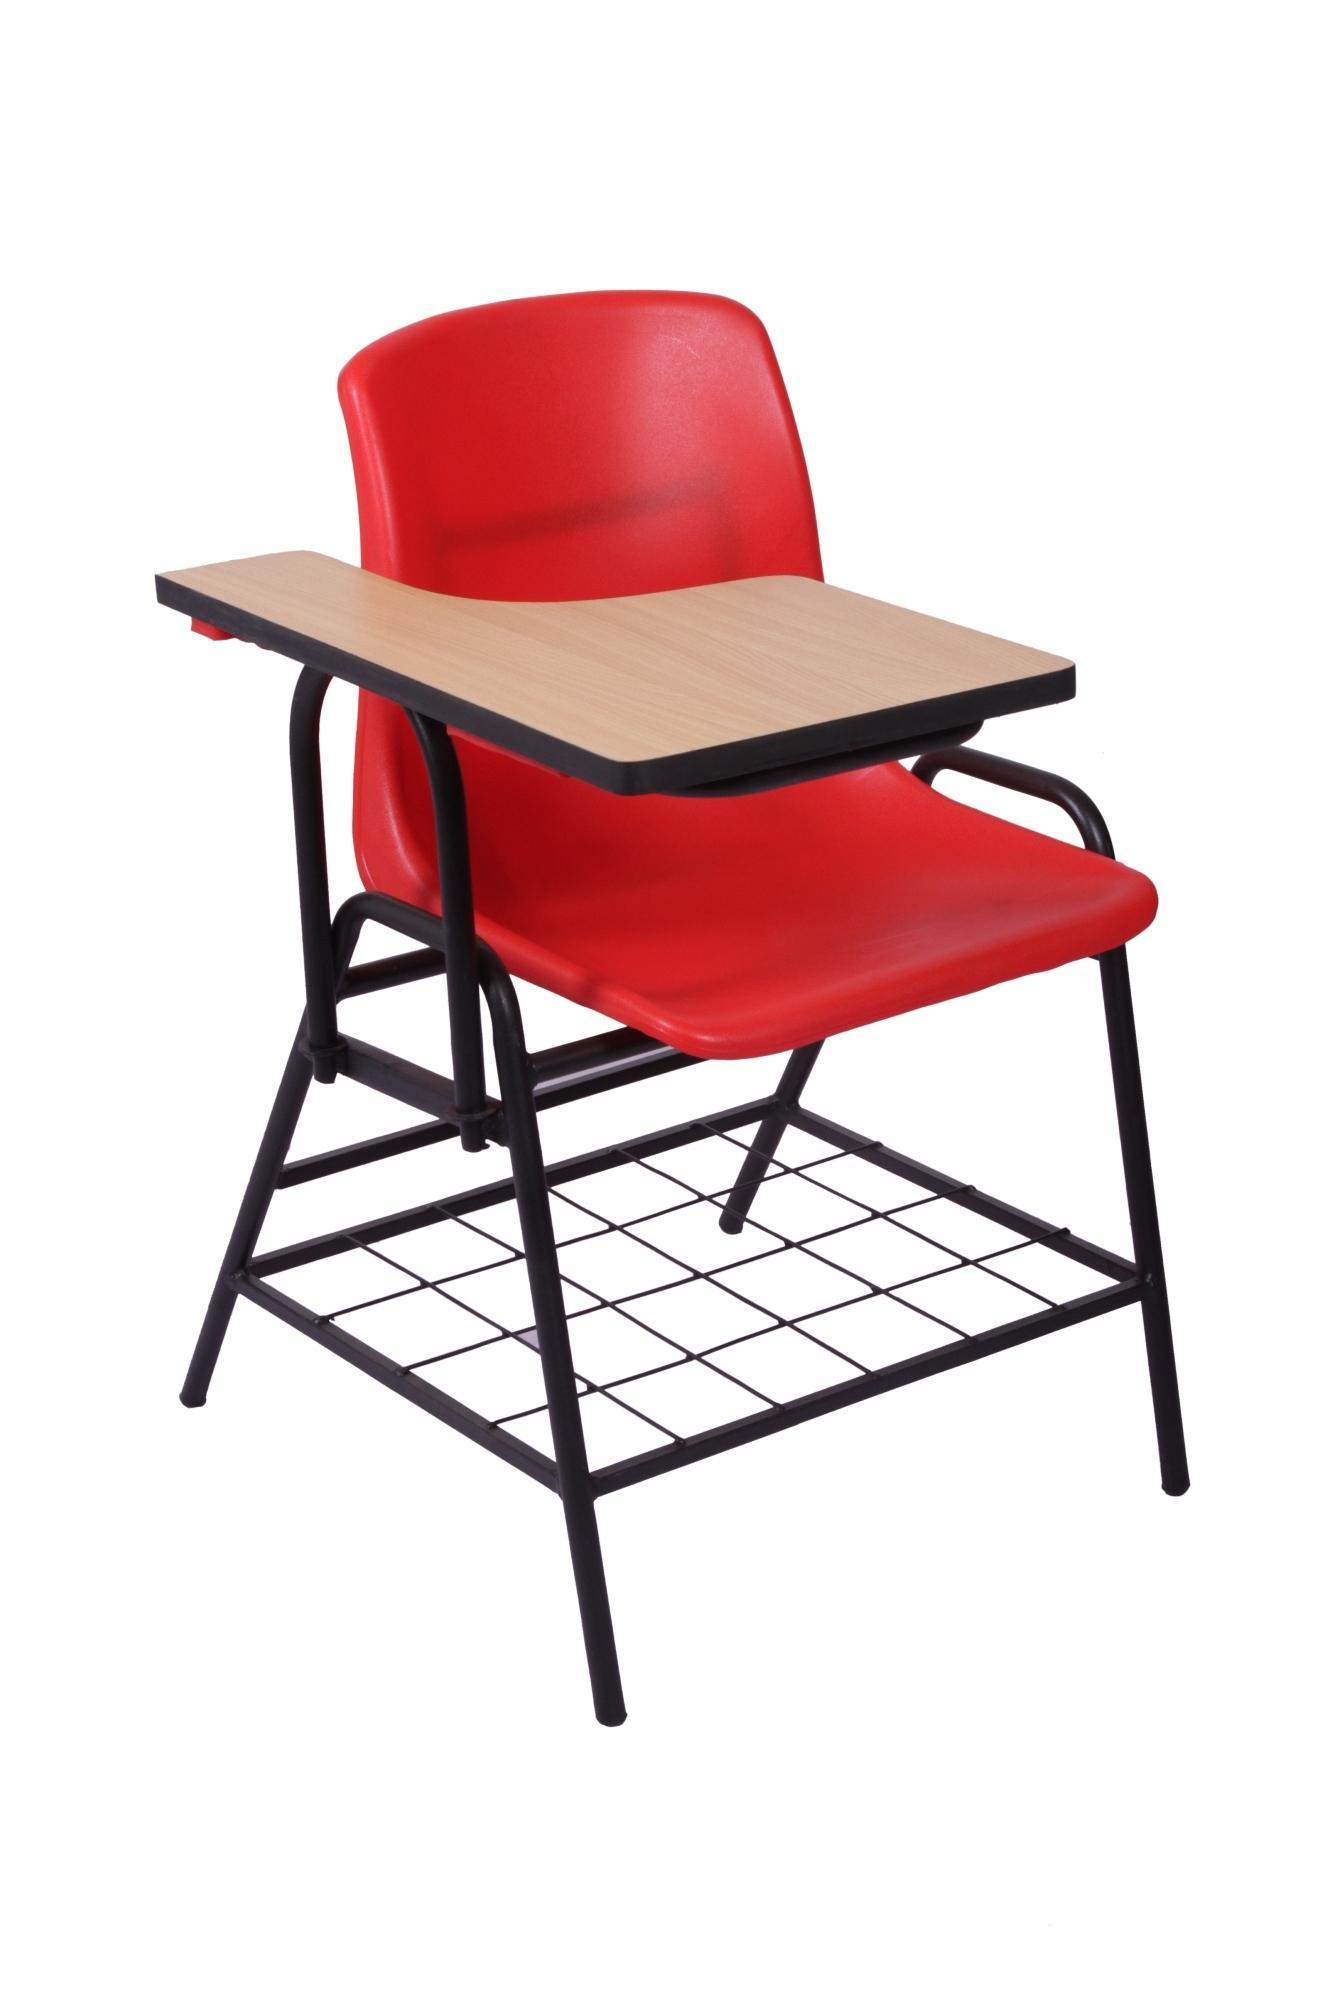 Tanin Institute Furniture Series - CH-01 Tab net wooden top - Red